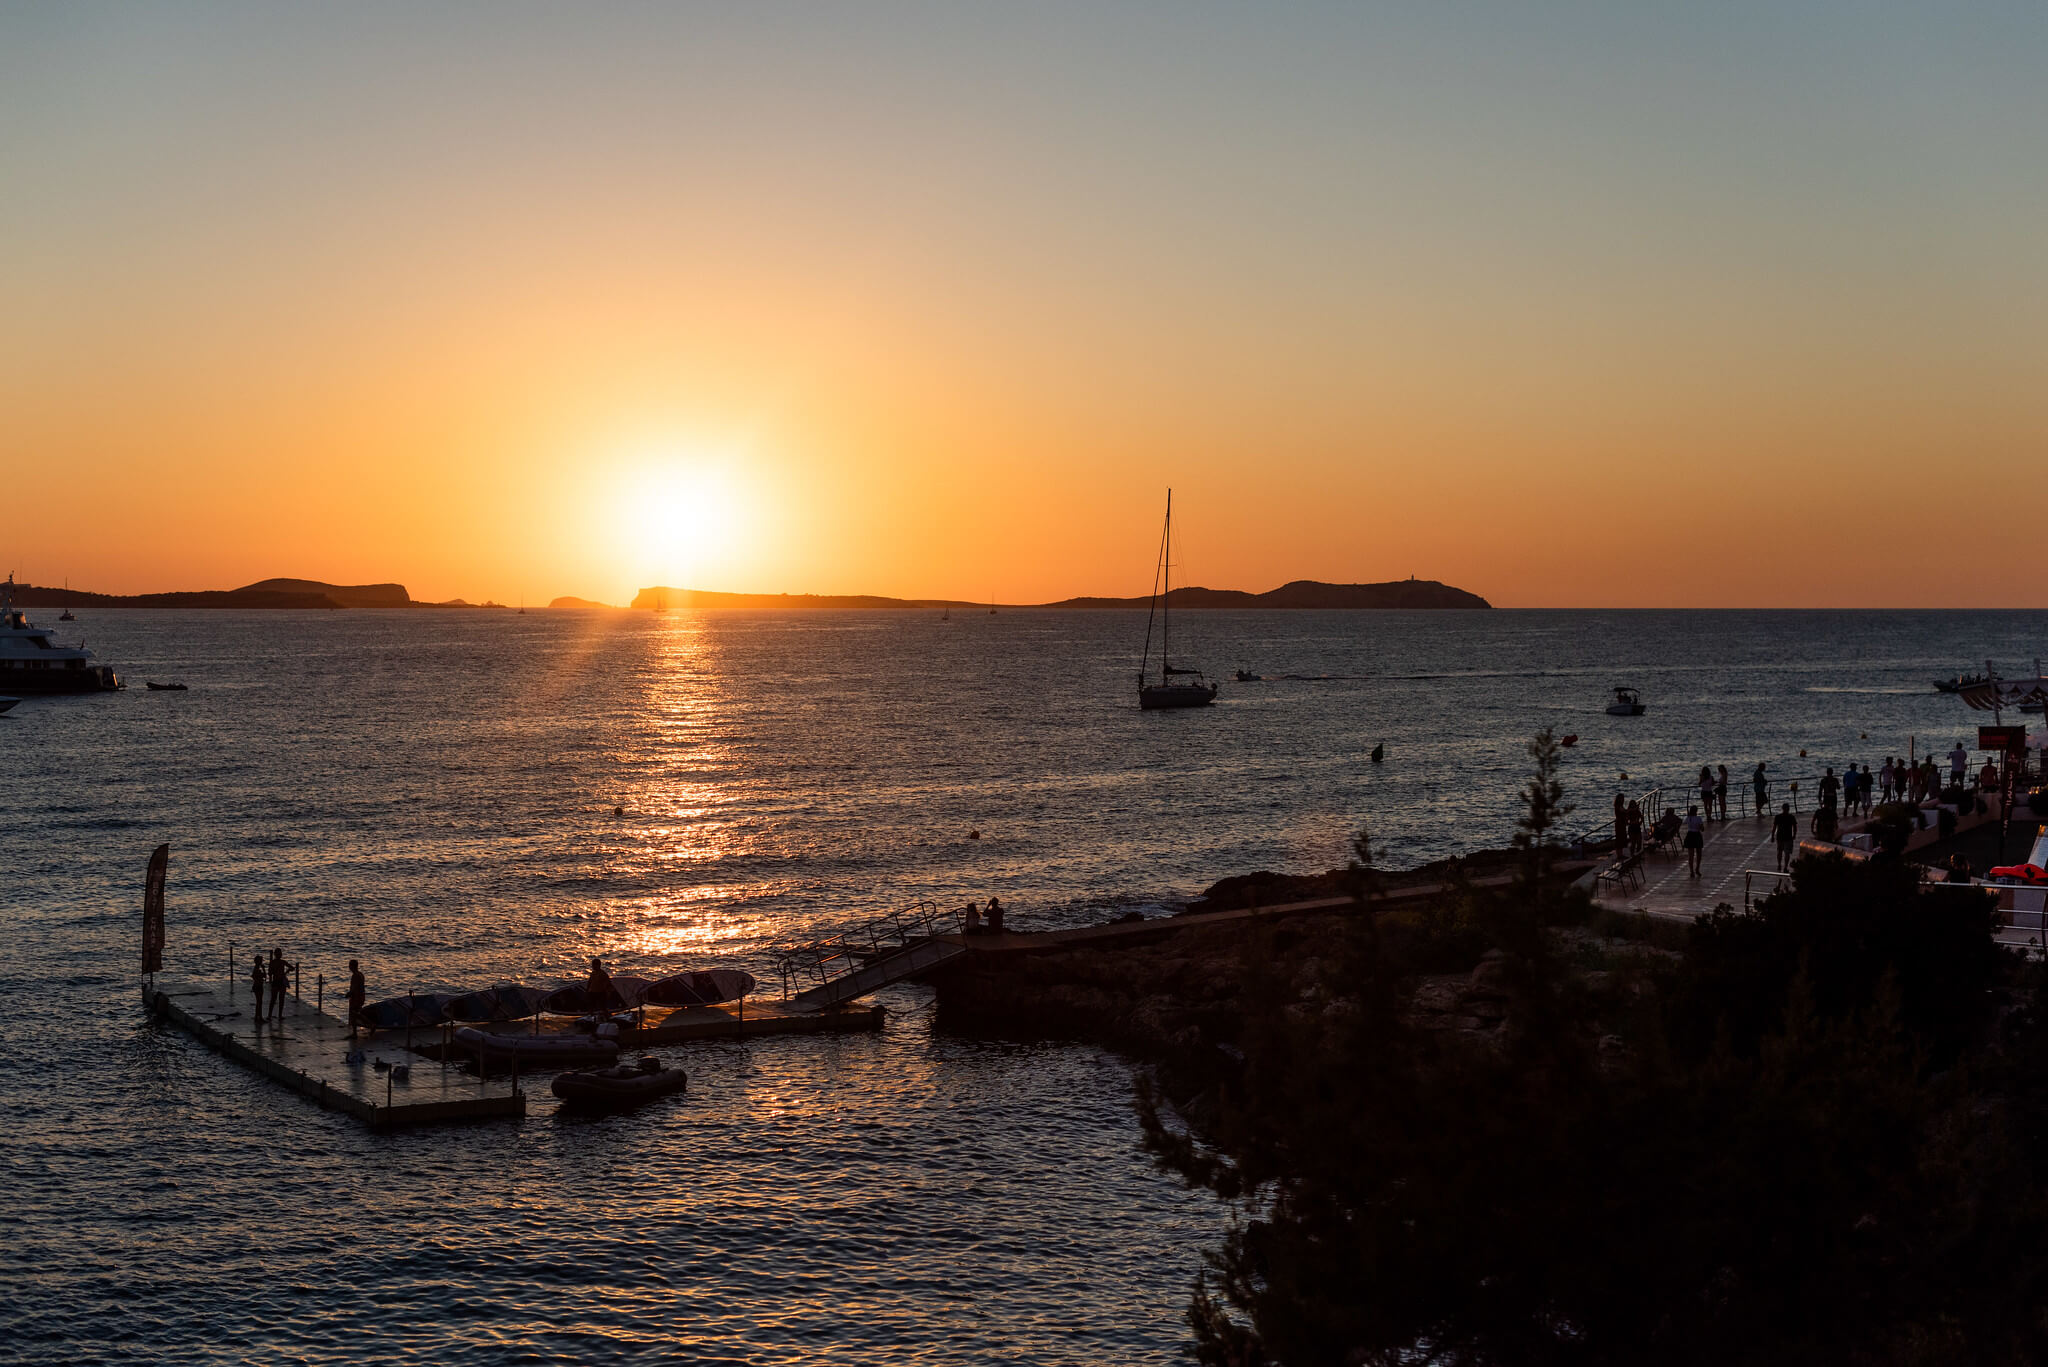 https://www.white-ibiza.com/wp-content/uploads/2020/03/ibiza-sunsets-sunset-strip-2020-05.jpg